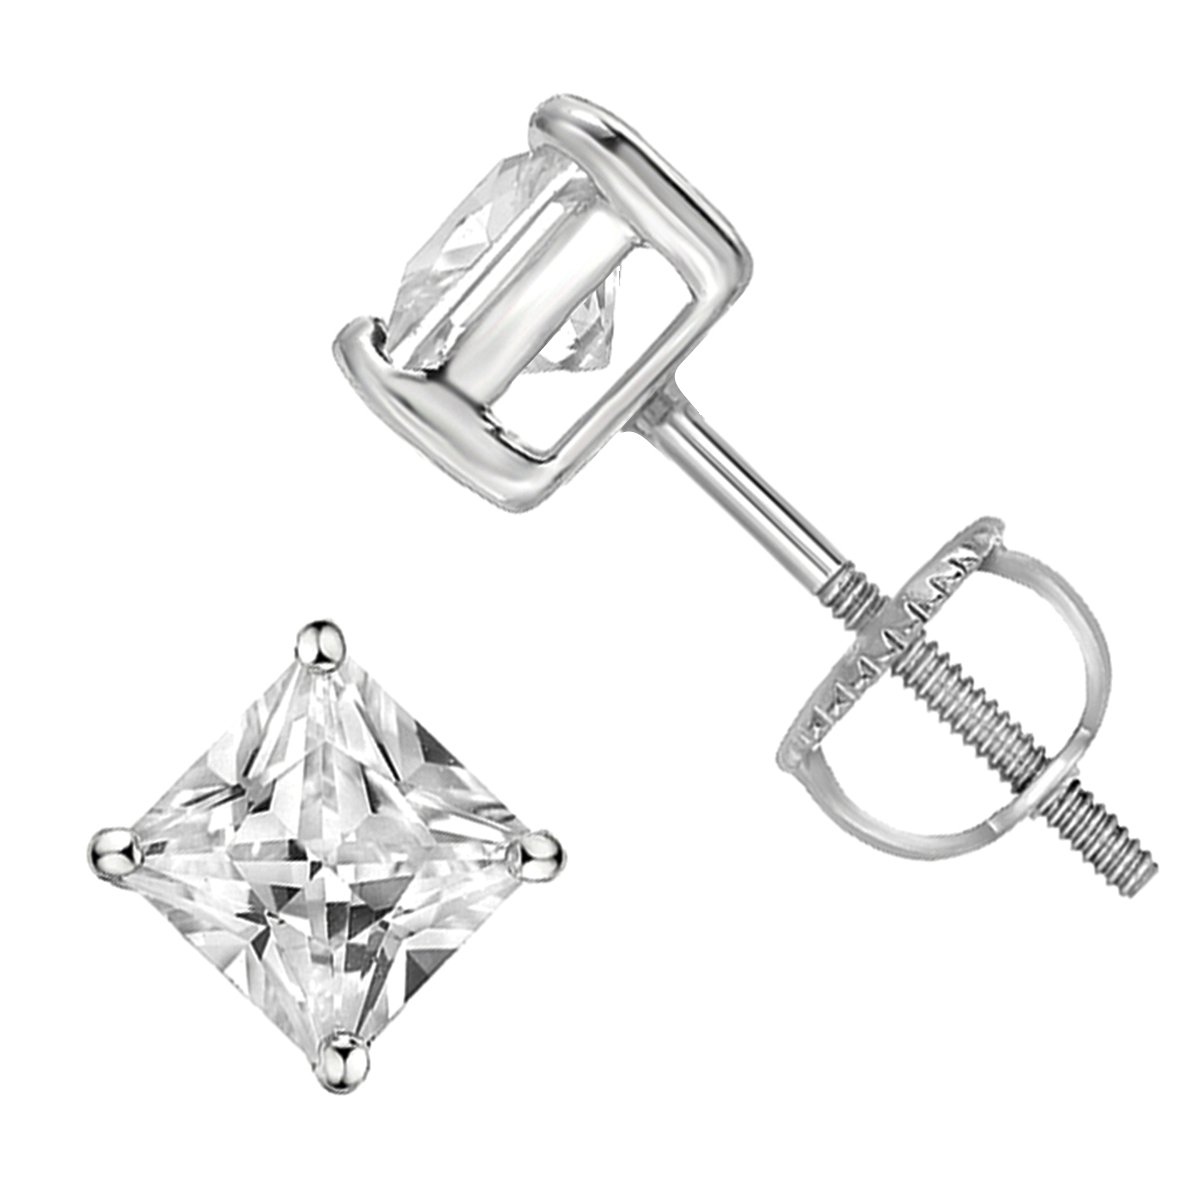 925 Sterling Silver Princess Cut Square Cz Screw Back Stud Earrings Rhodium Plated - 5x5